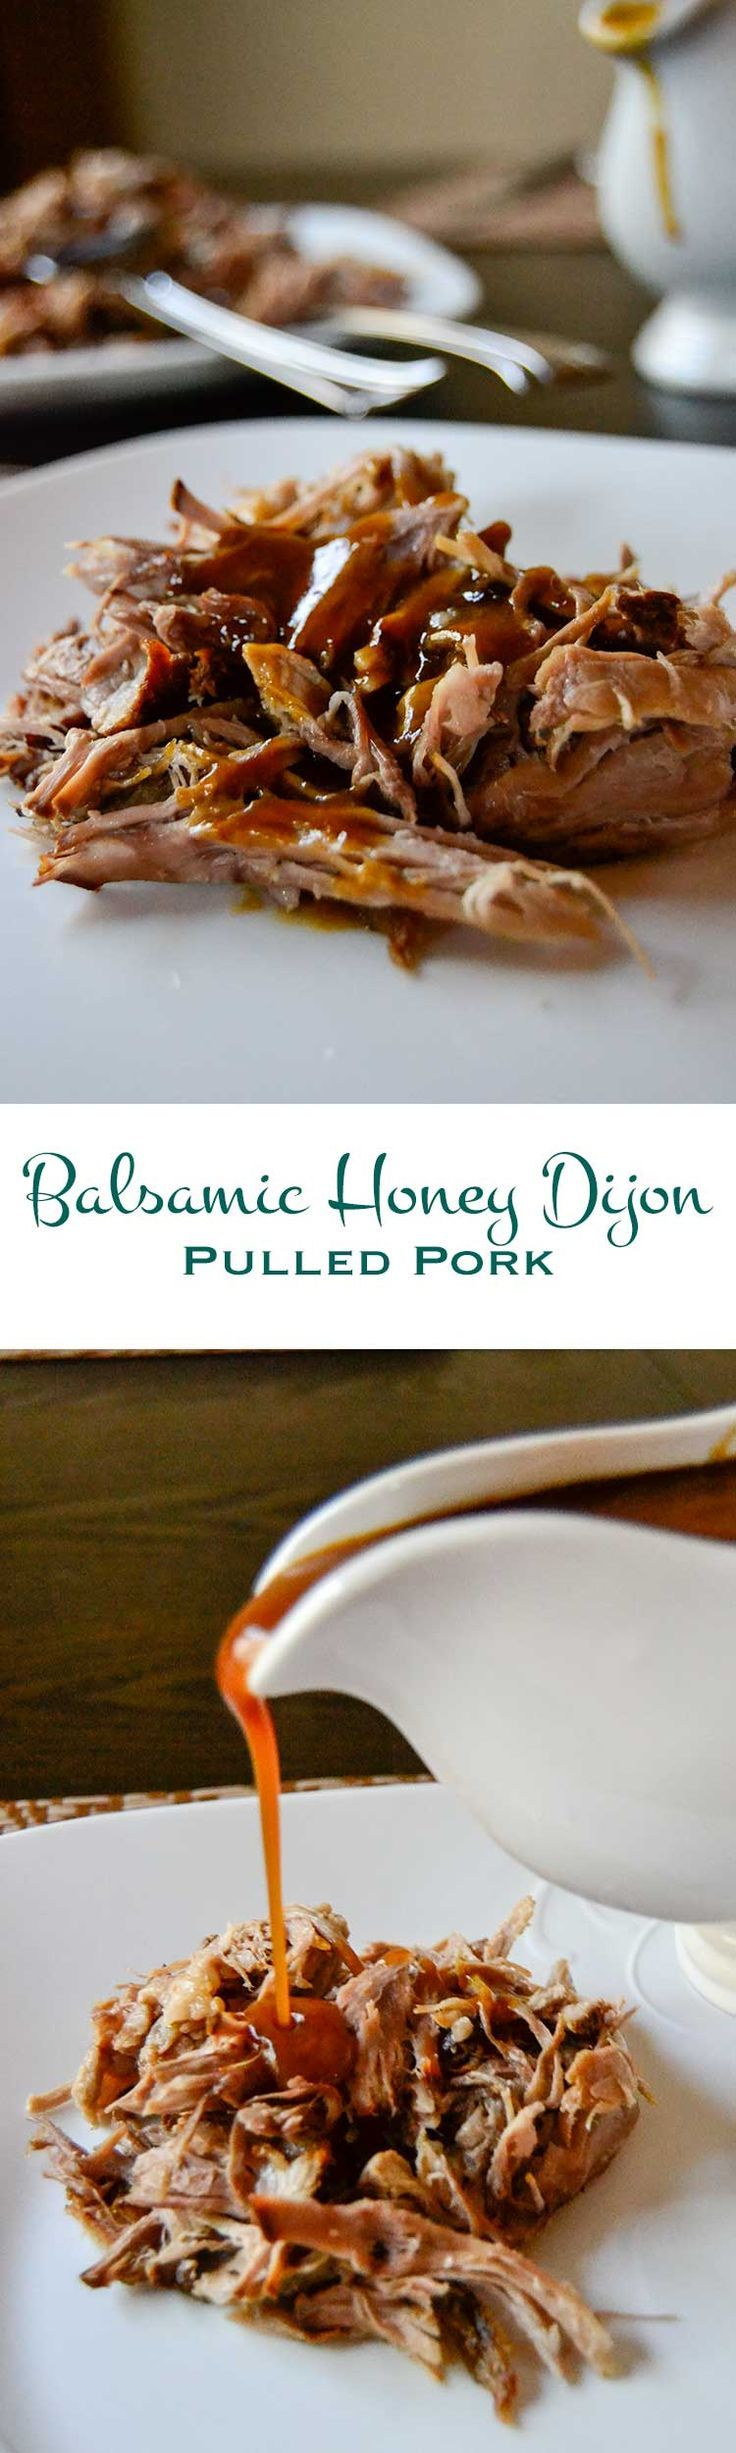 This balsamic honey dijon pulled pork is slathered in a sweet and tangy sauce, then roasted for 8 hours in the slow cooker. Lots of flavor, little effort.